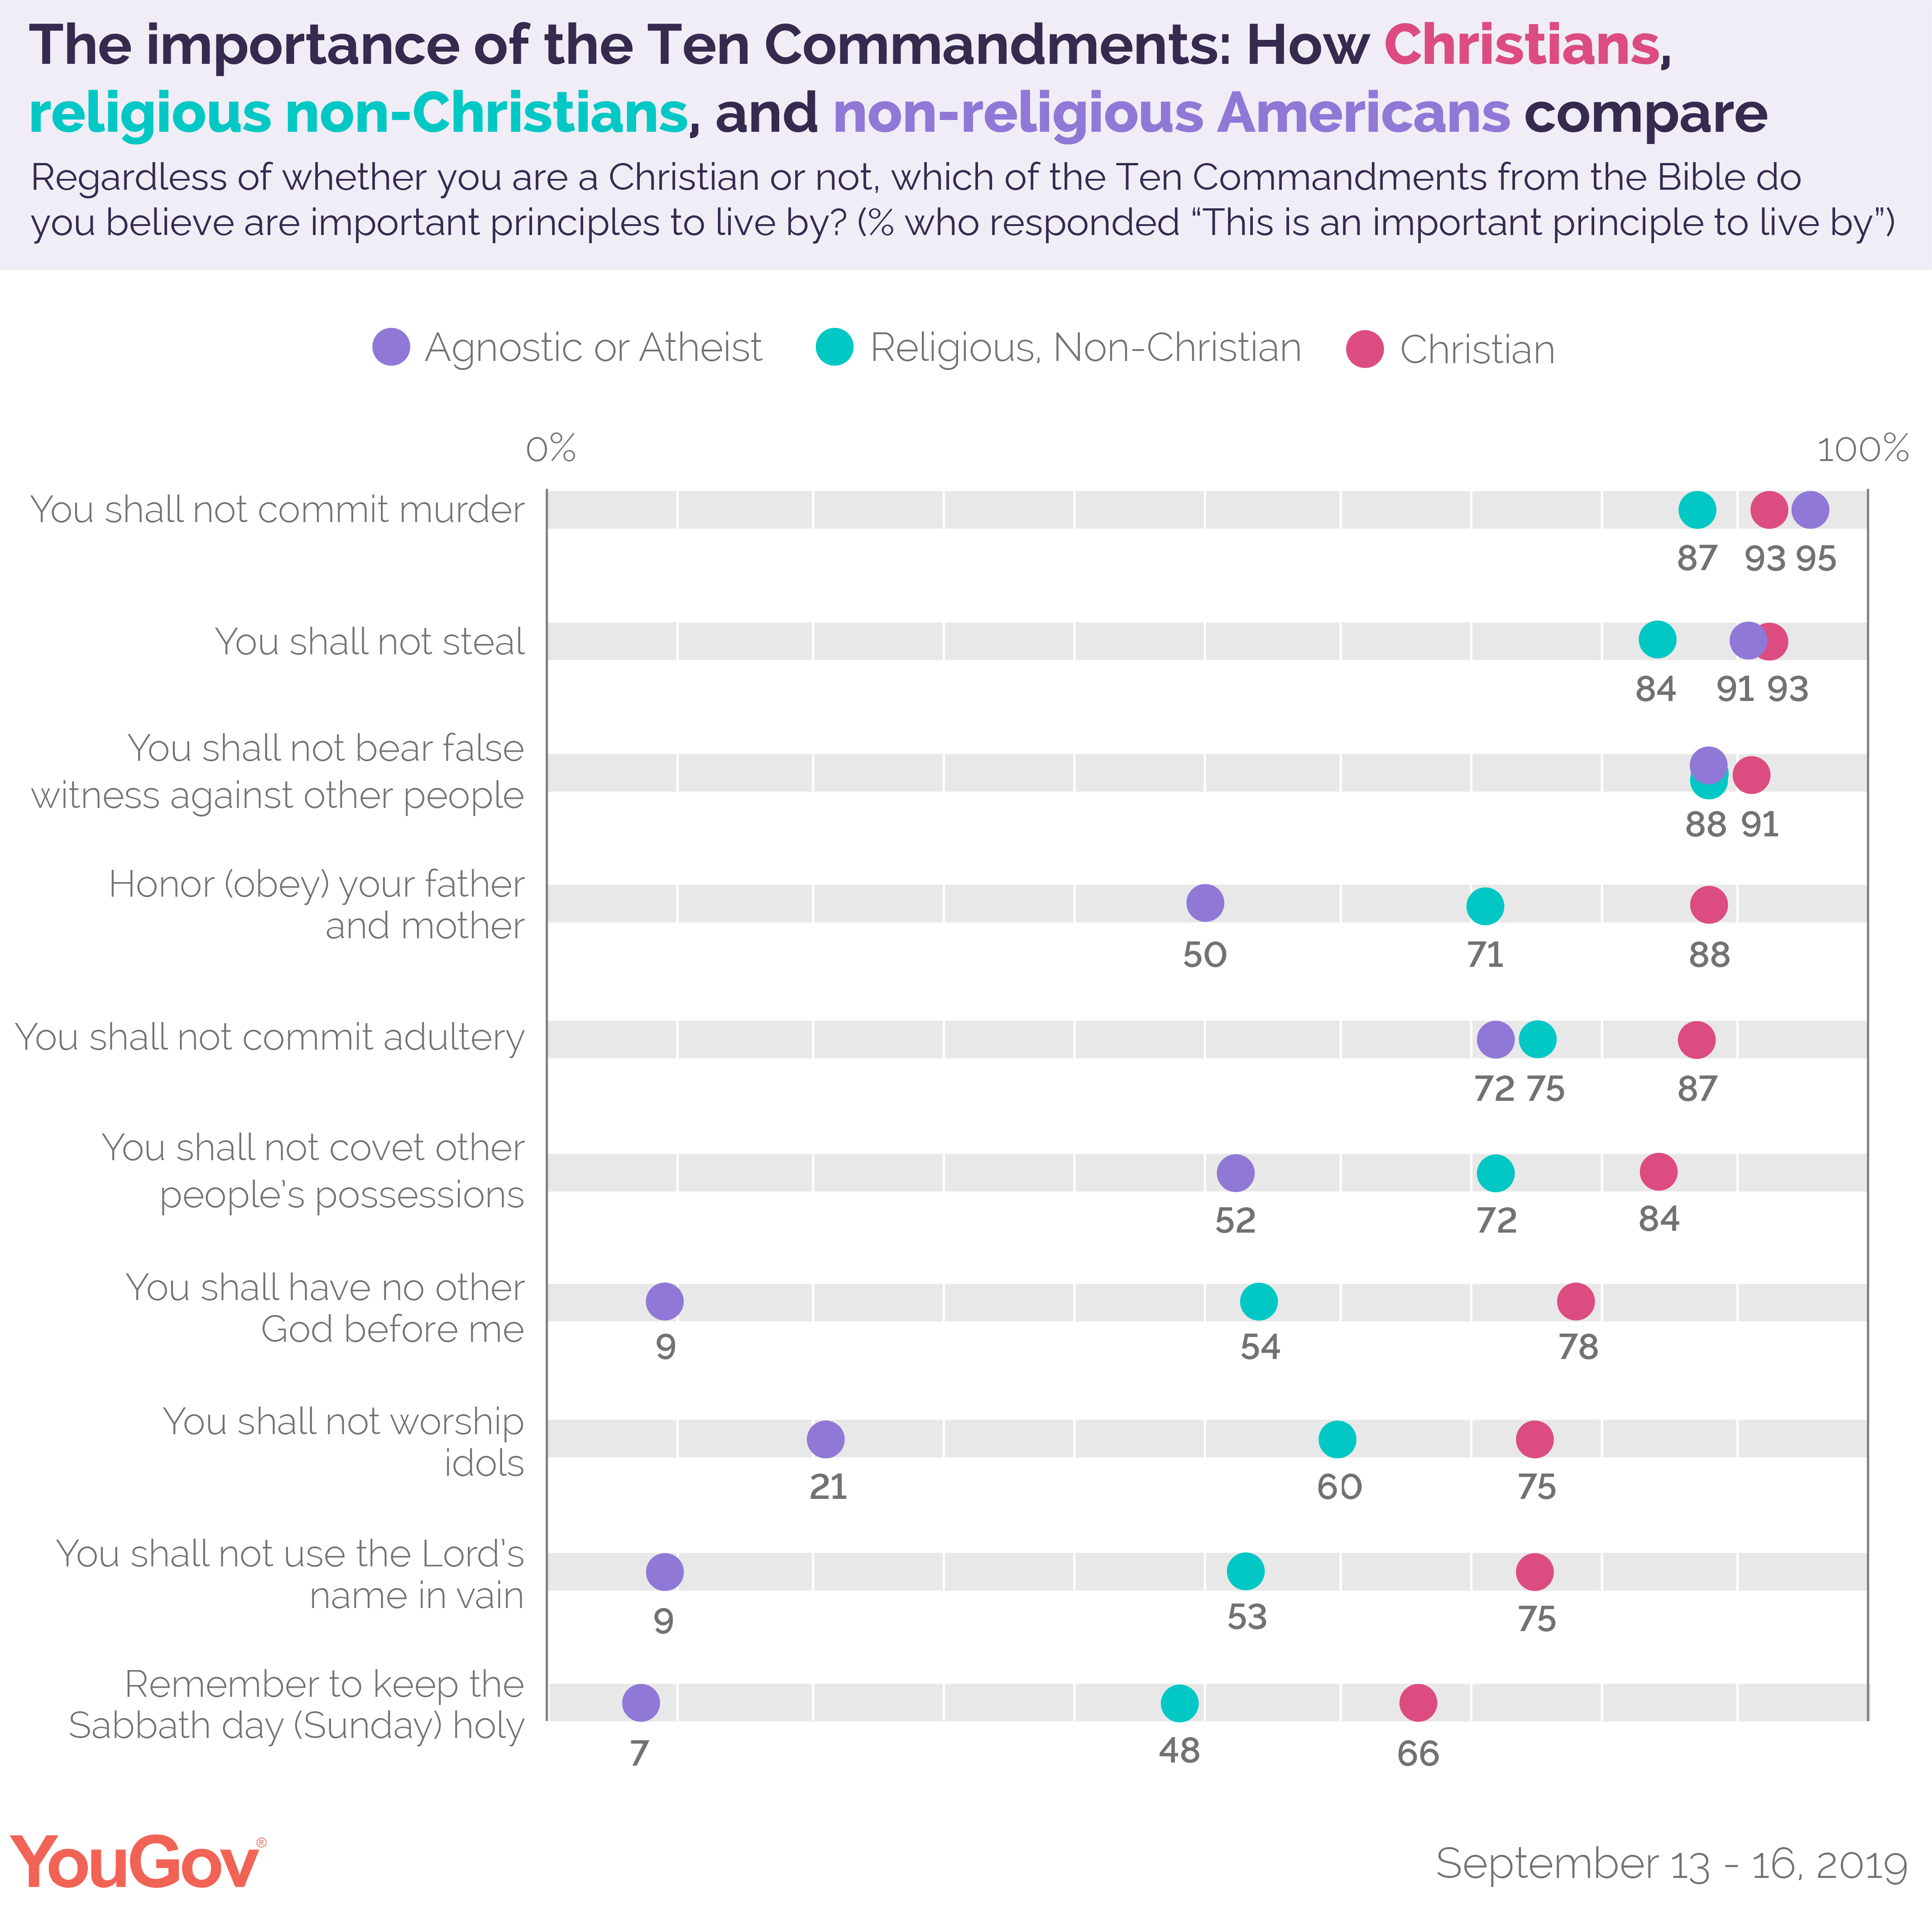 The importance of the Ten Commandments: How Christians, religious non-Christians, and non-religious Americans compare